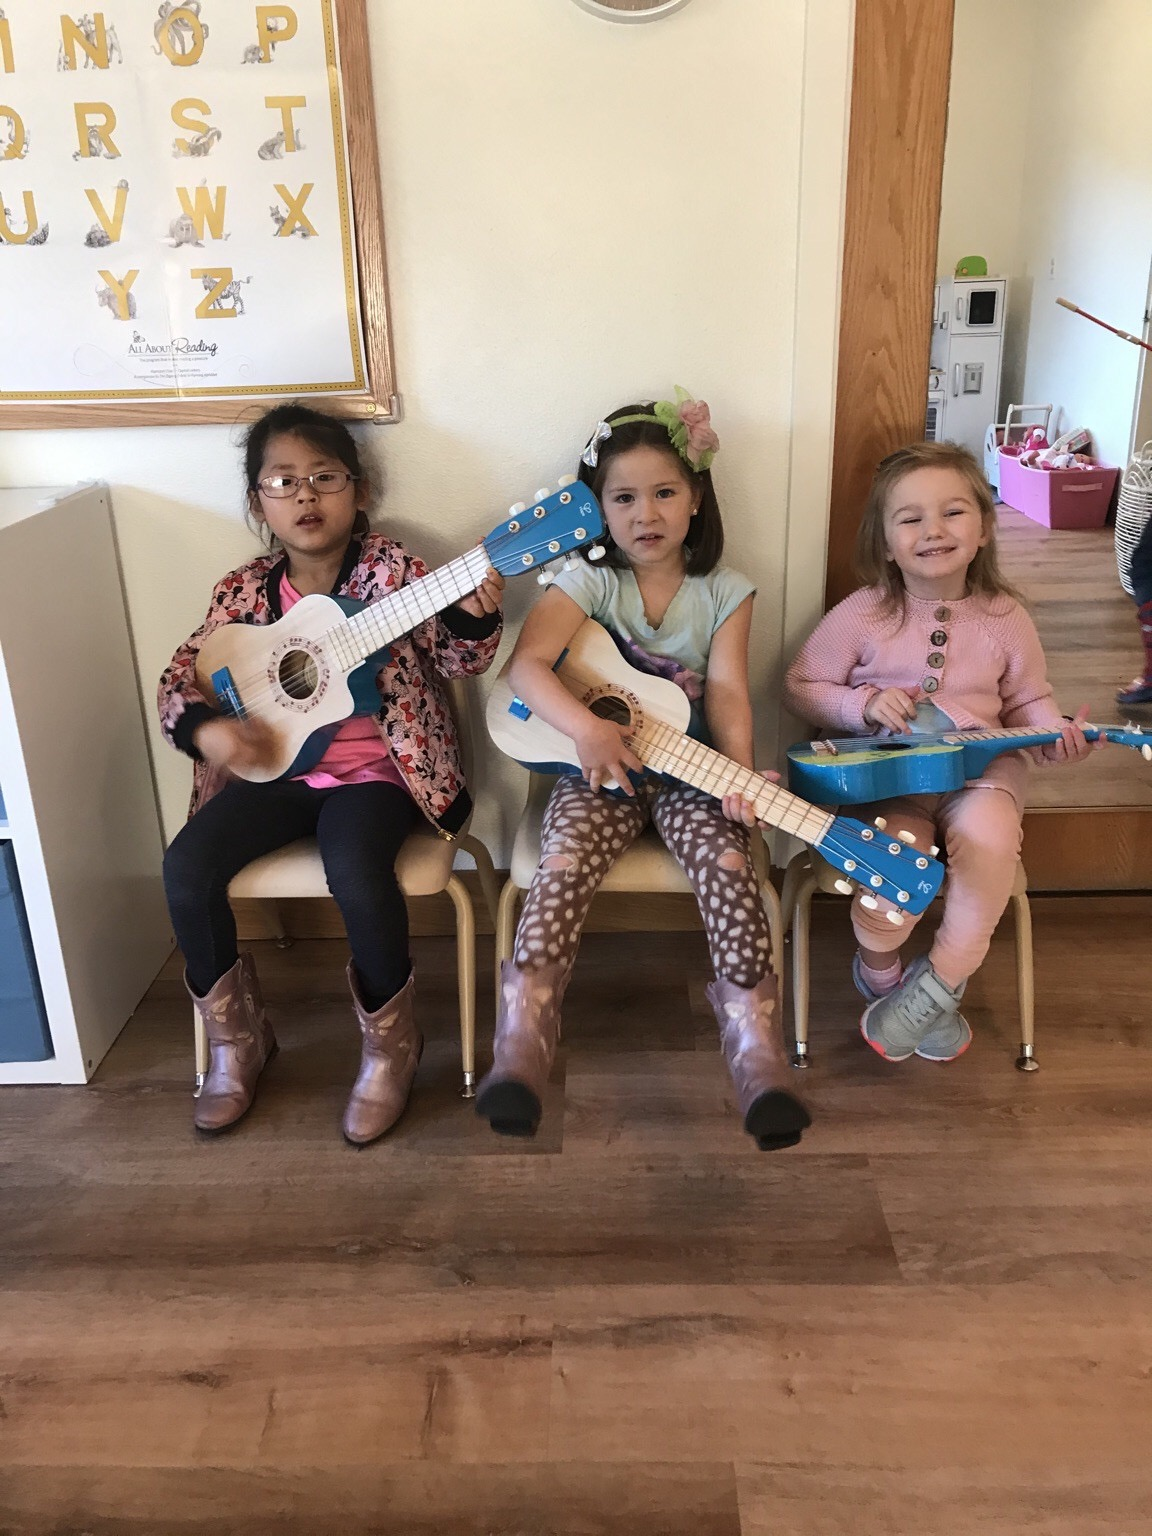 Music - Students sitting on chairs and playing guitars